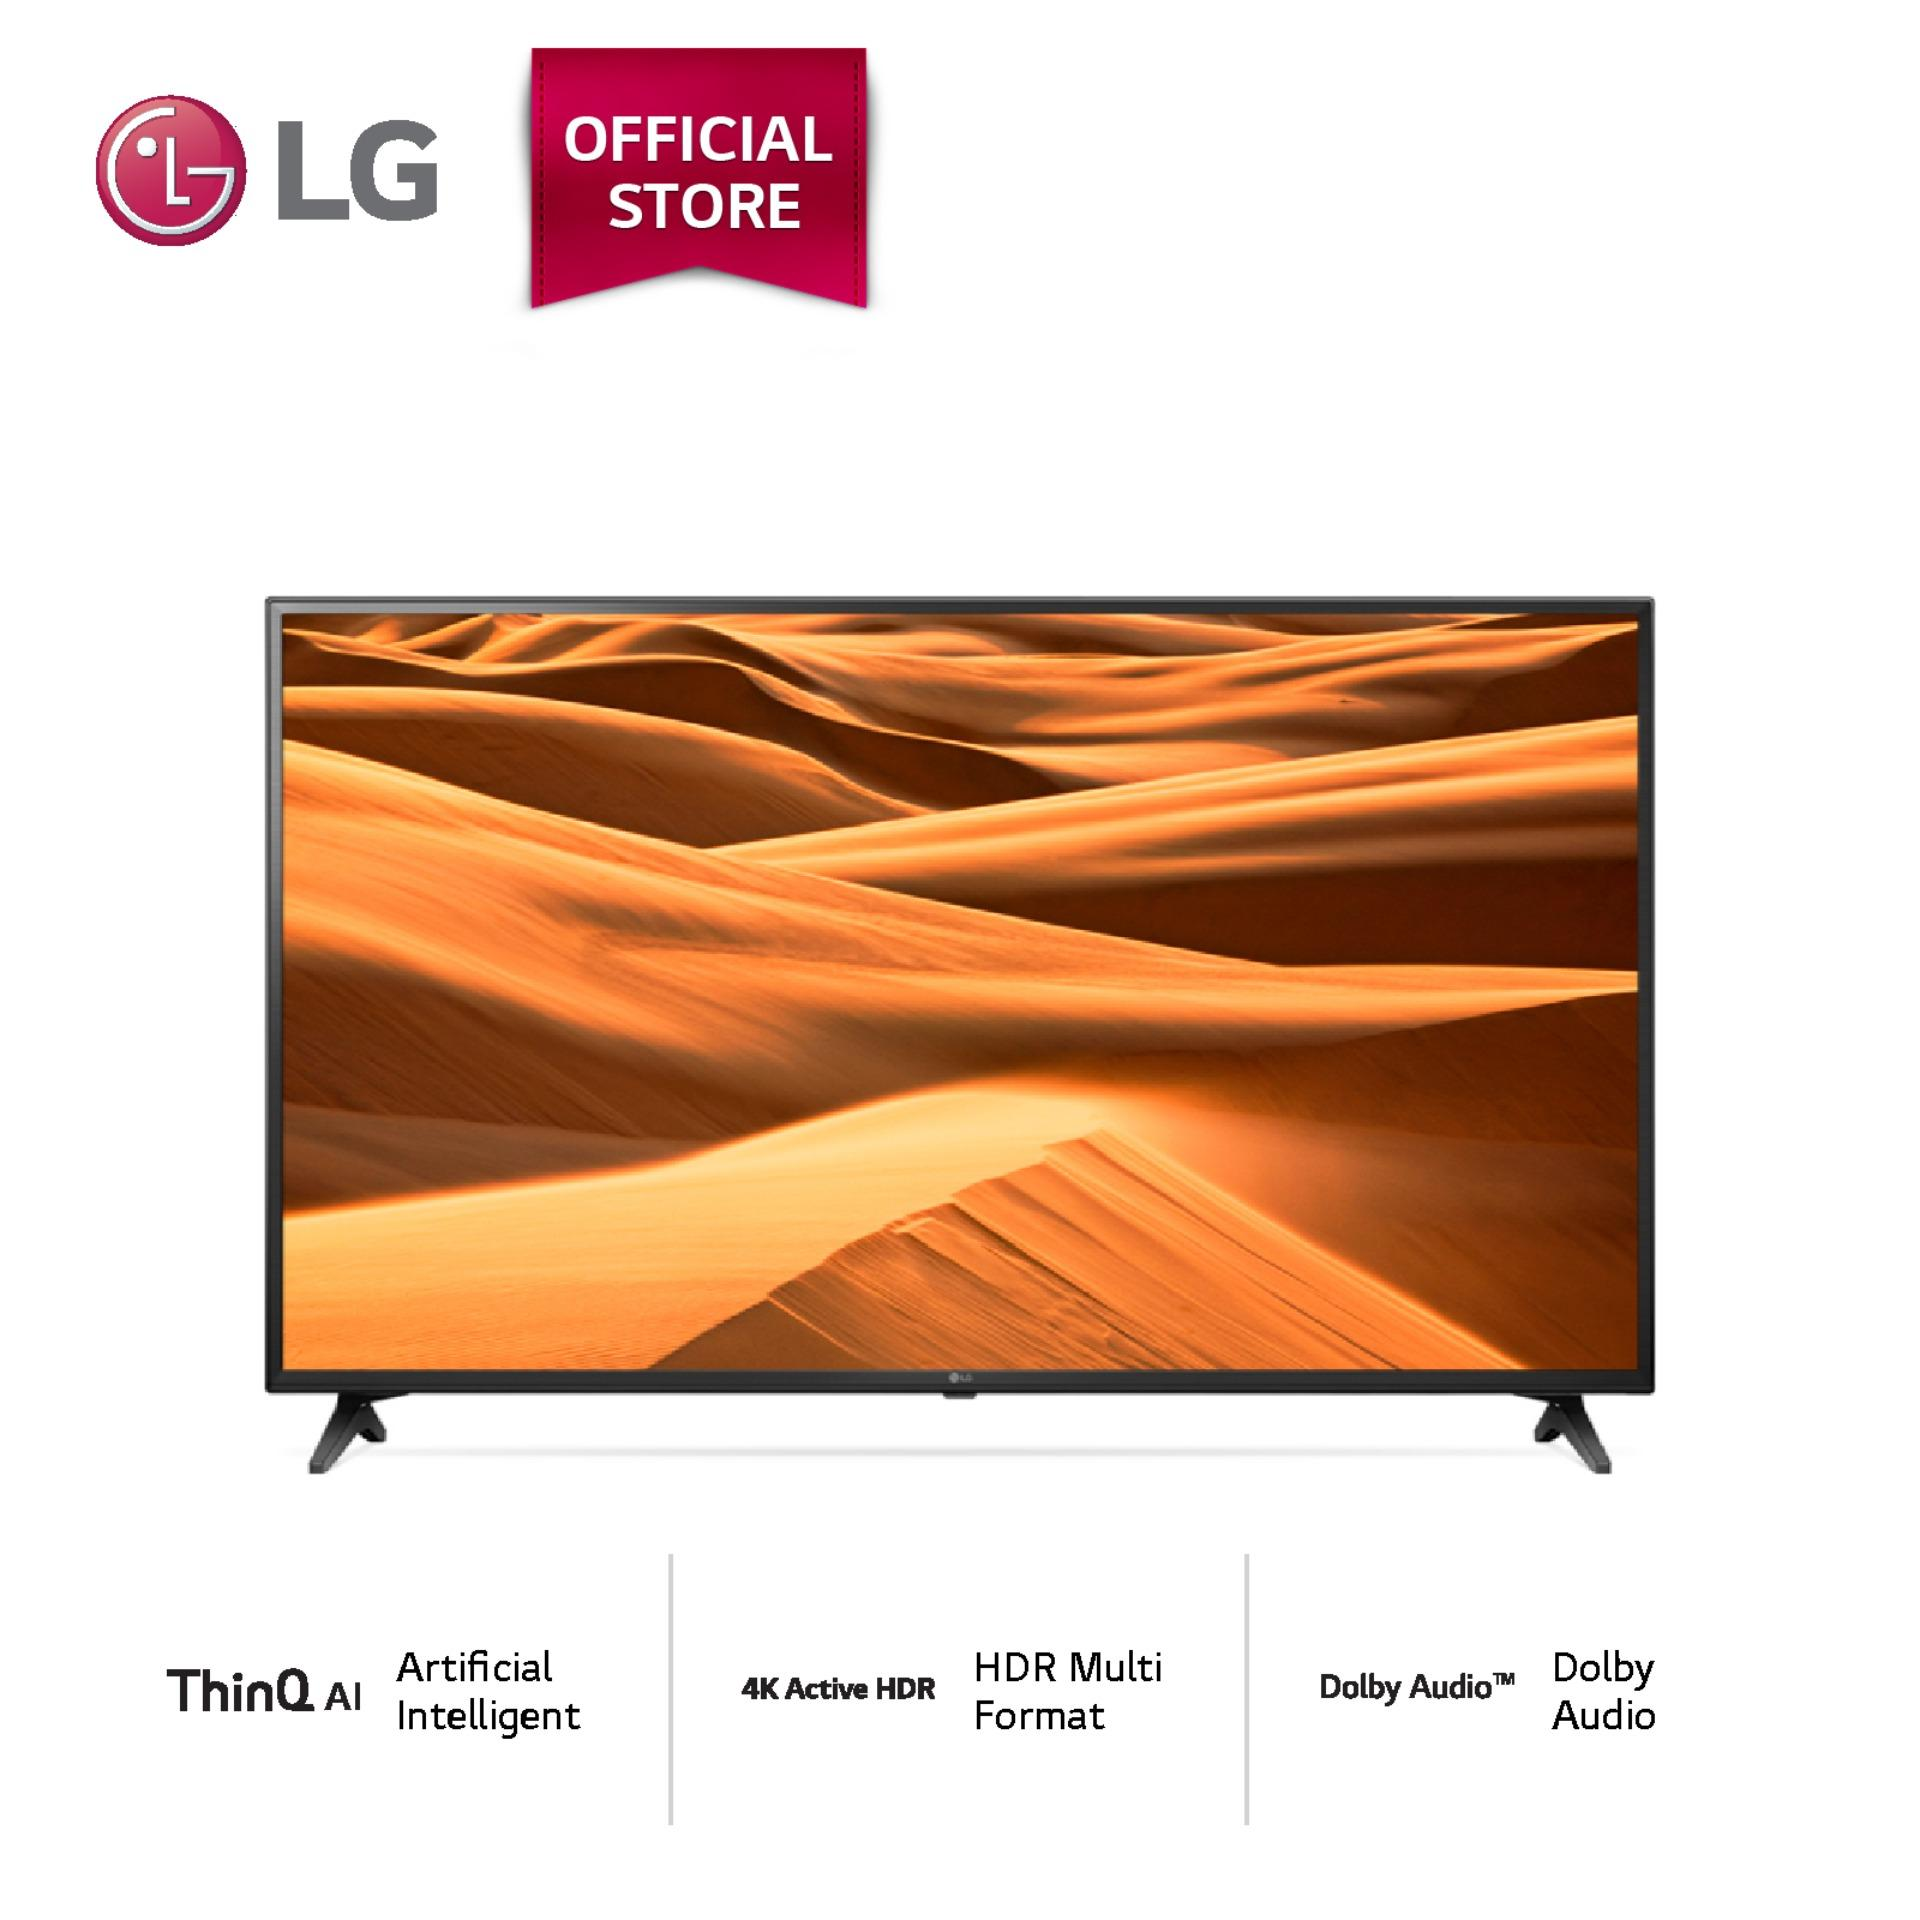 LG 43 Inch UHD webOS Smart TV - Hitam (Model 43UM7100PTA)